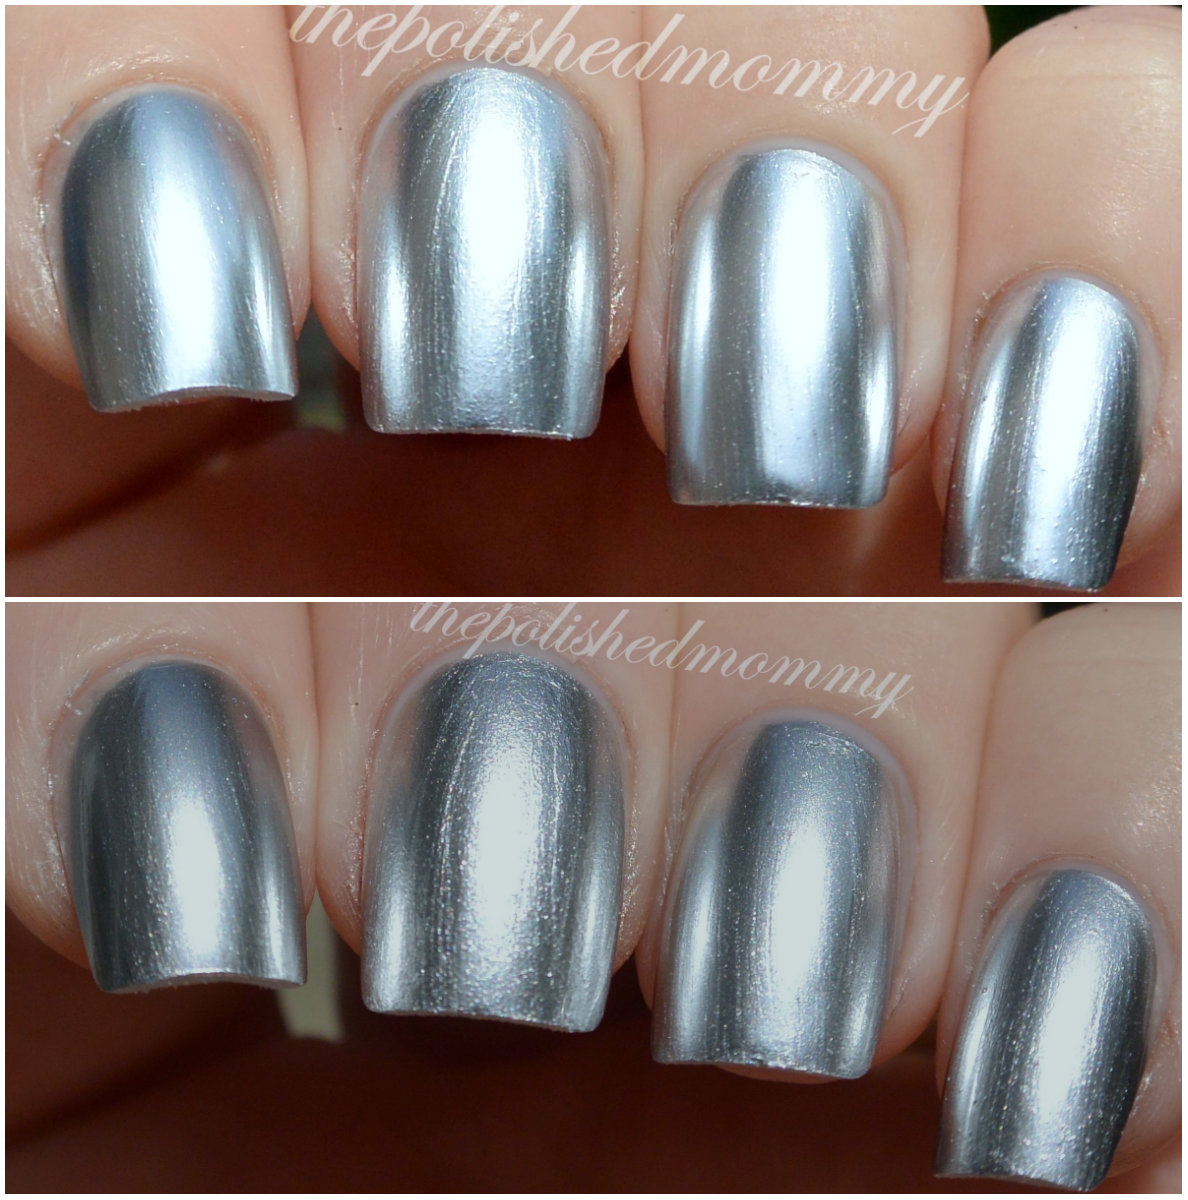 Sally Hansen Color Foils... - The Polished Mommy